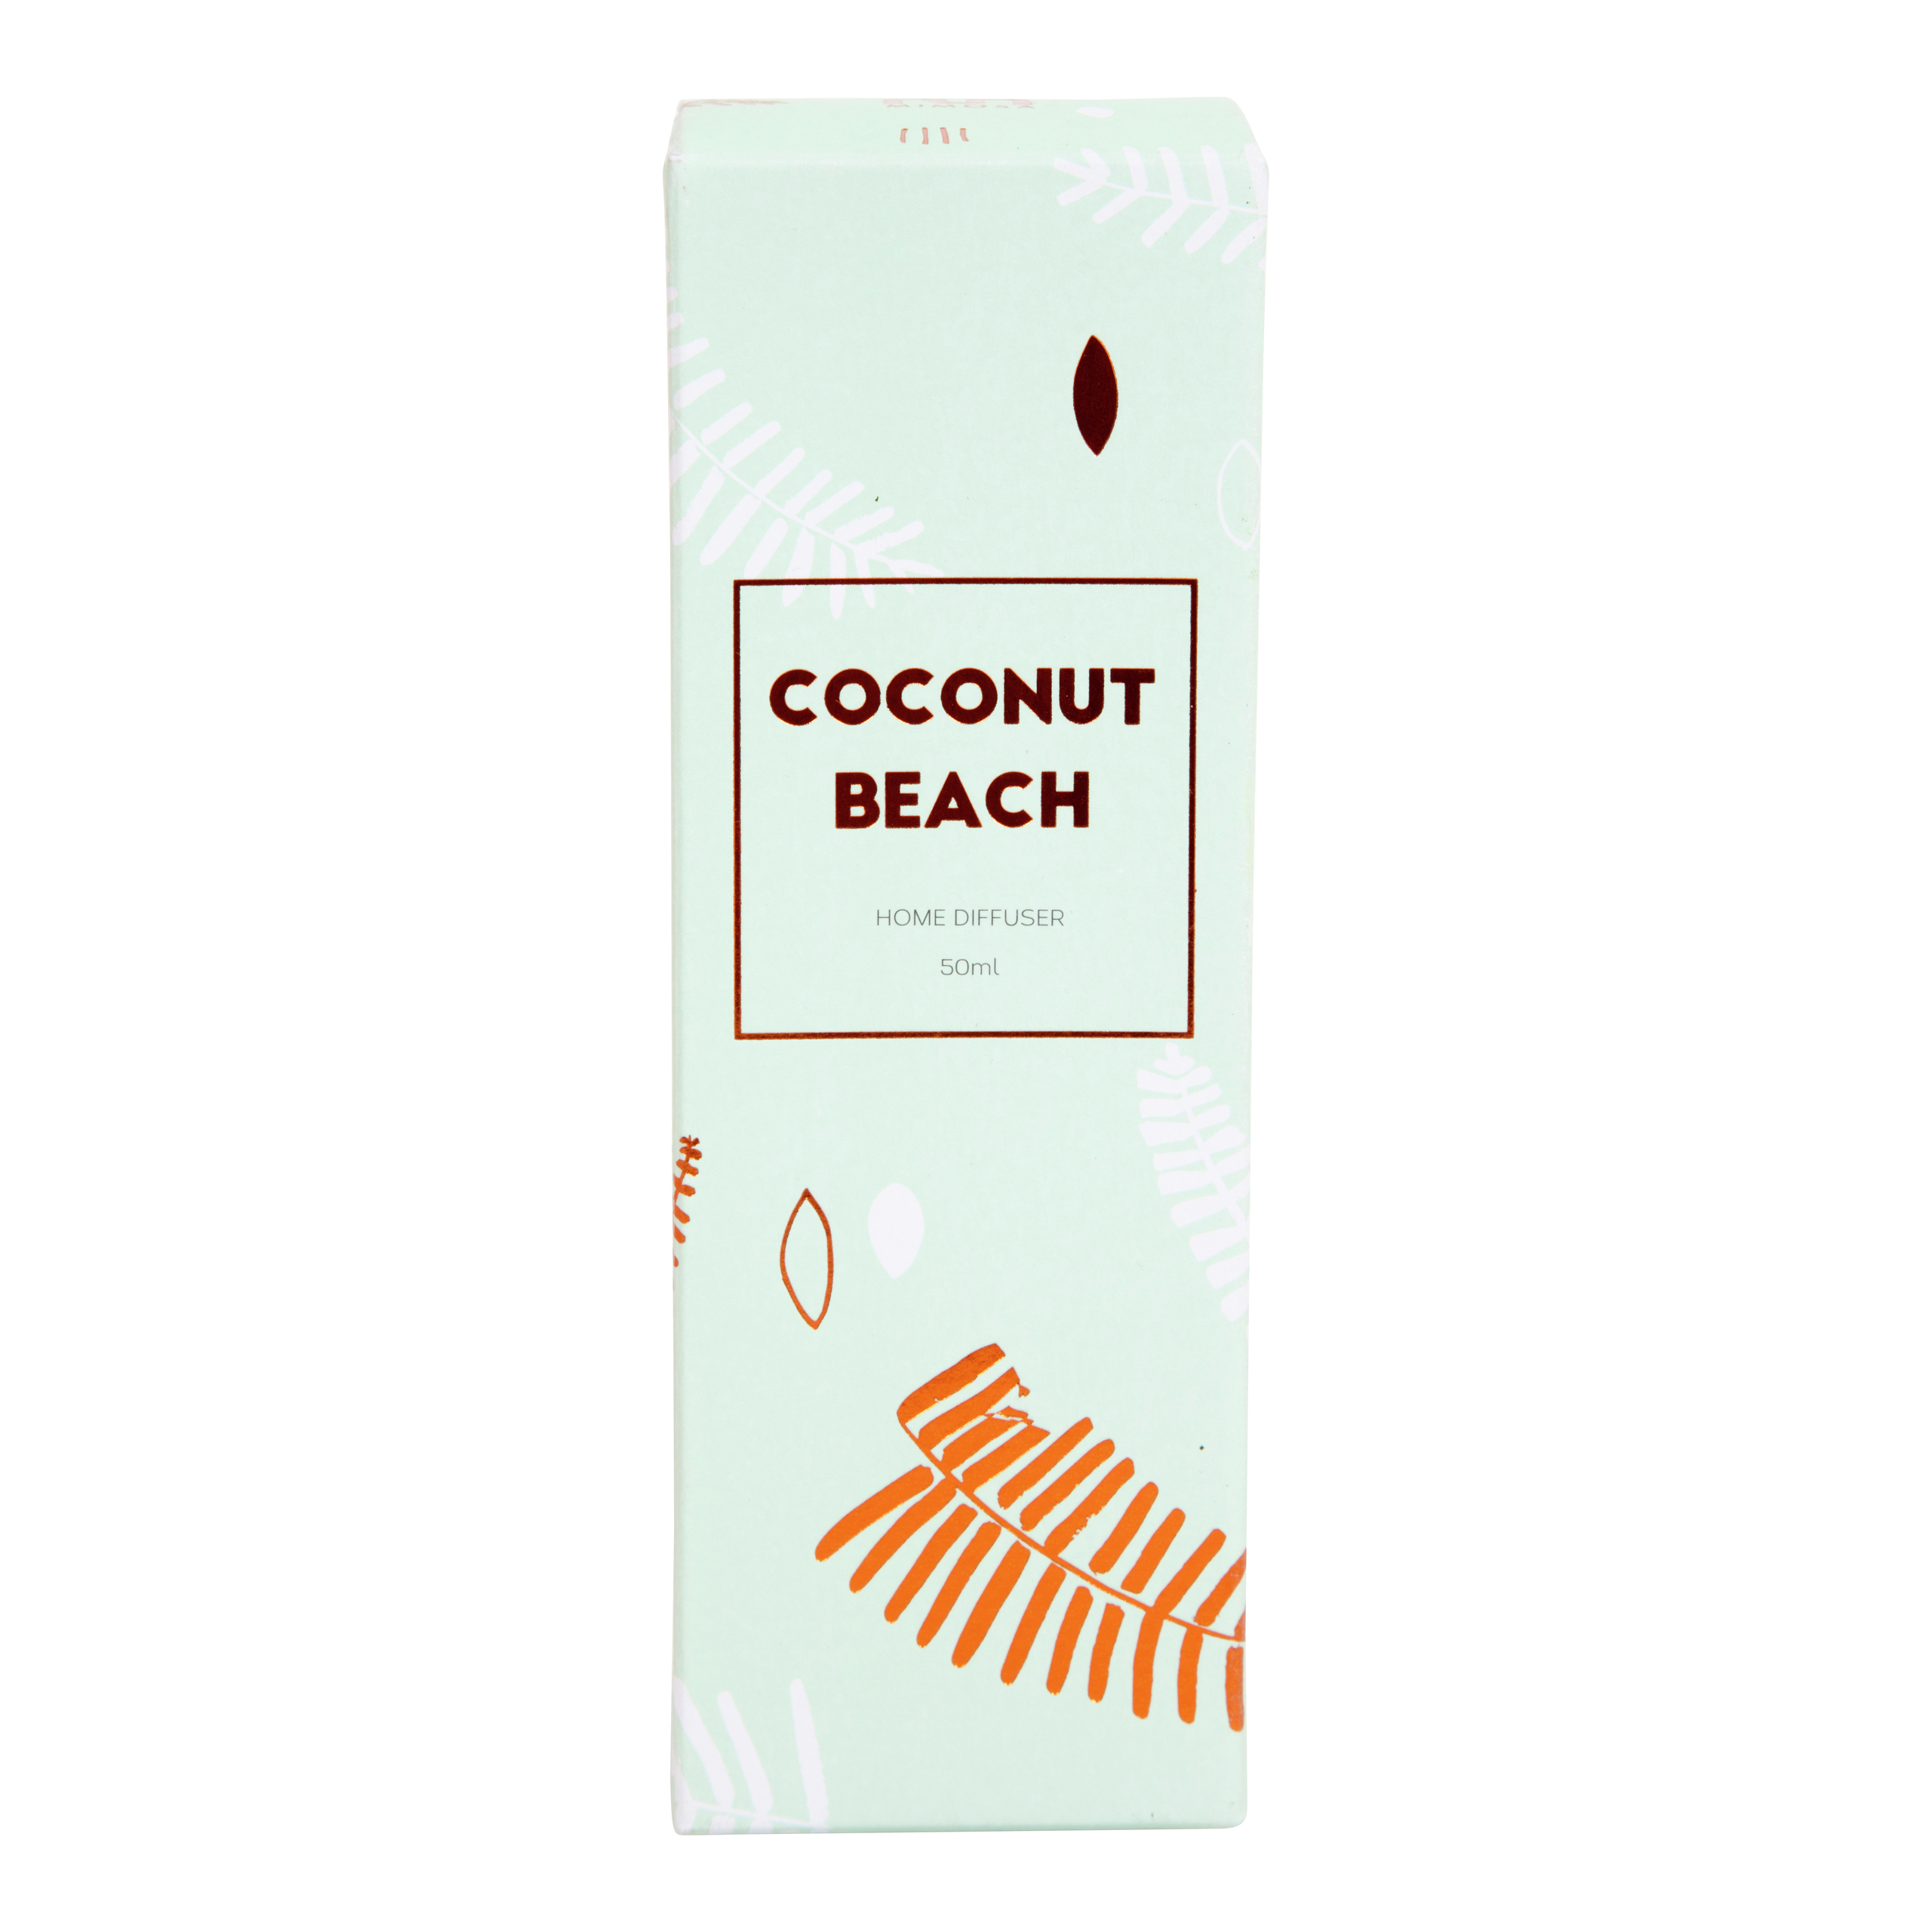 DUFTOLJE COCONUT BEACH 50ML-DUF5225